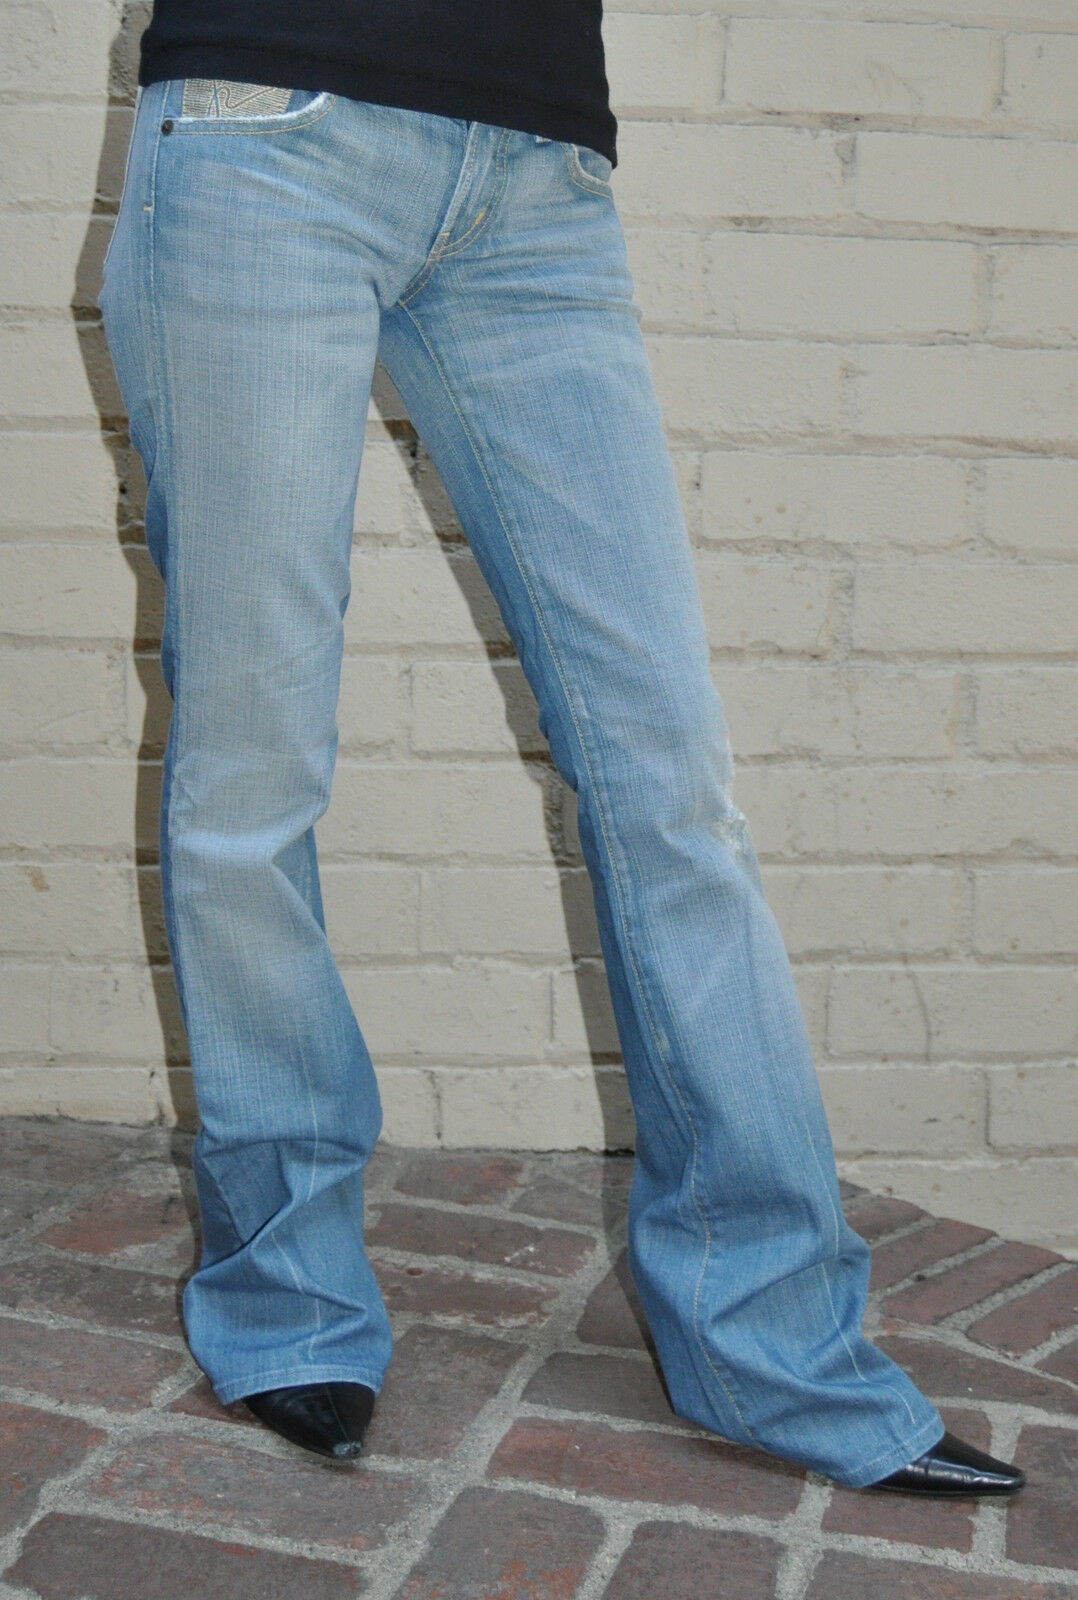 Citizens Of Humanity Ingrid Bolinas bluee Jeans 25 USA Bootcut Womens